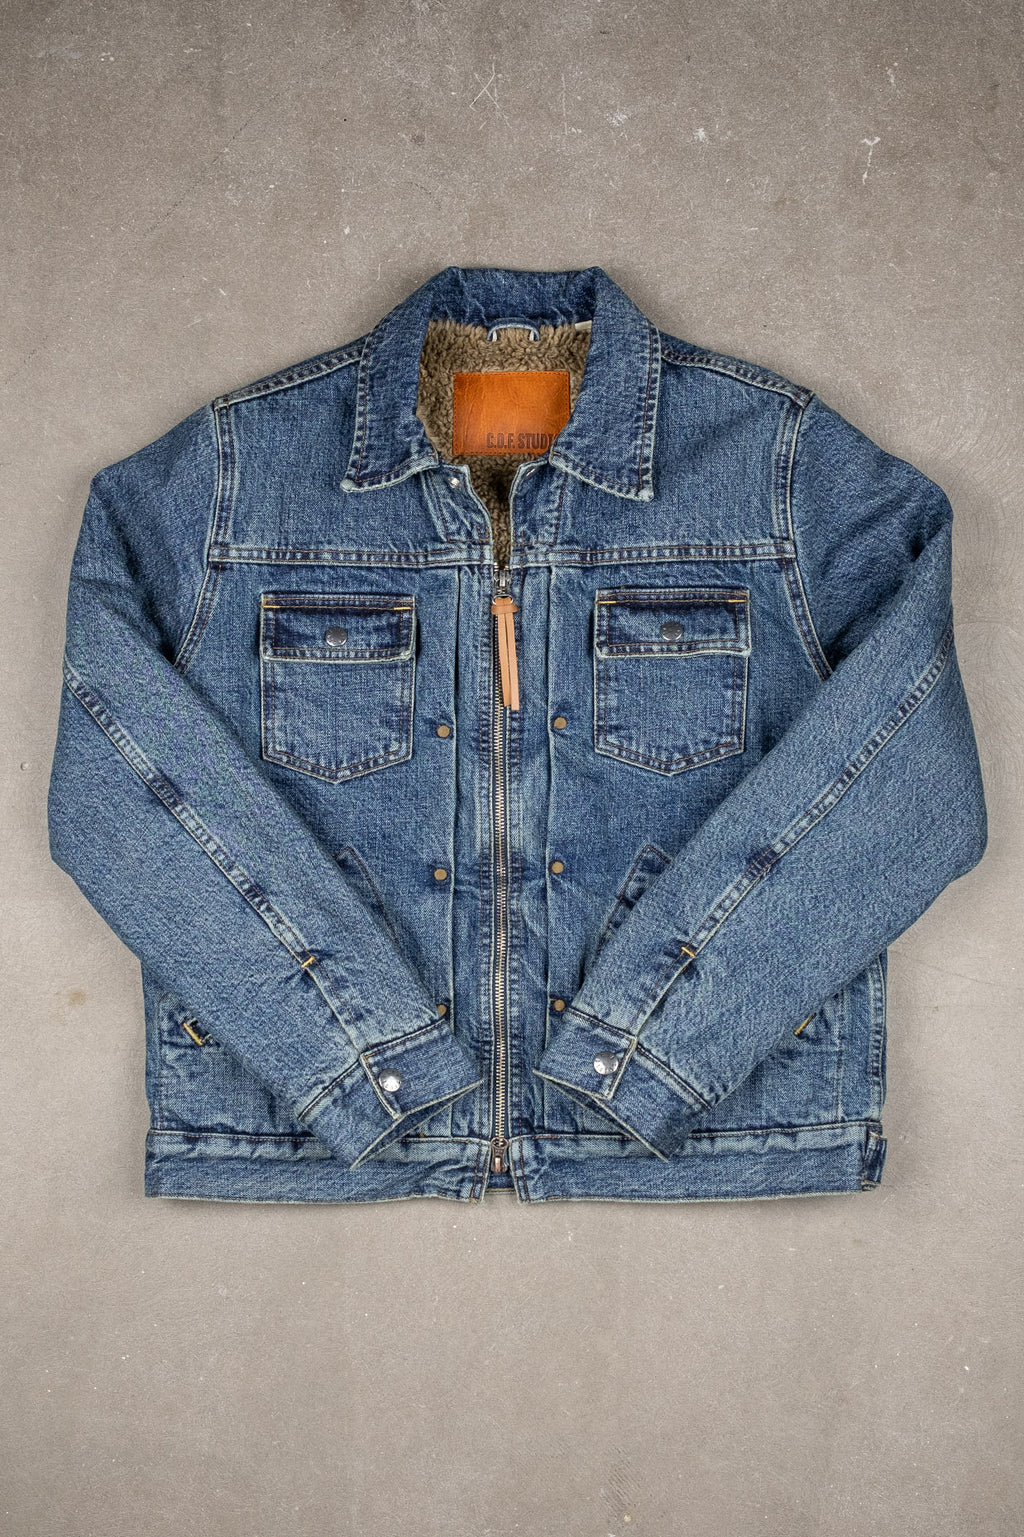 Denim Zip Jacket Sherpa - 5x Wash